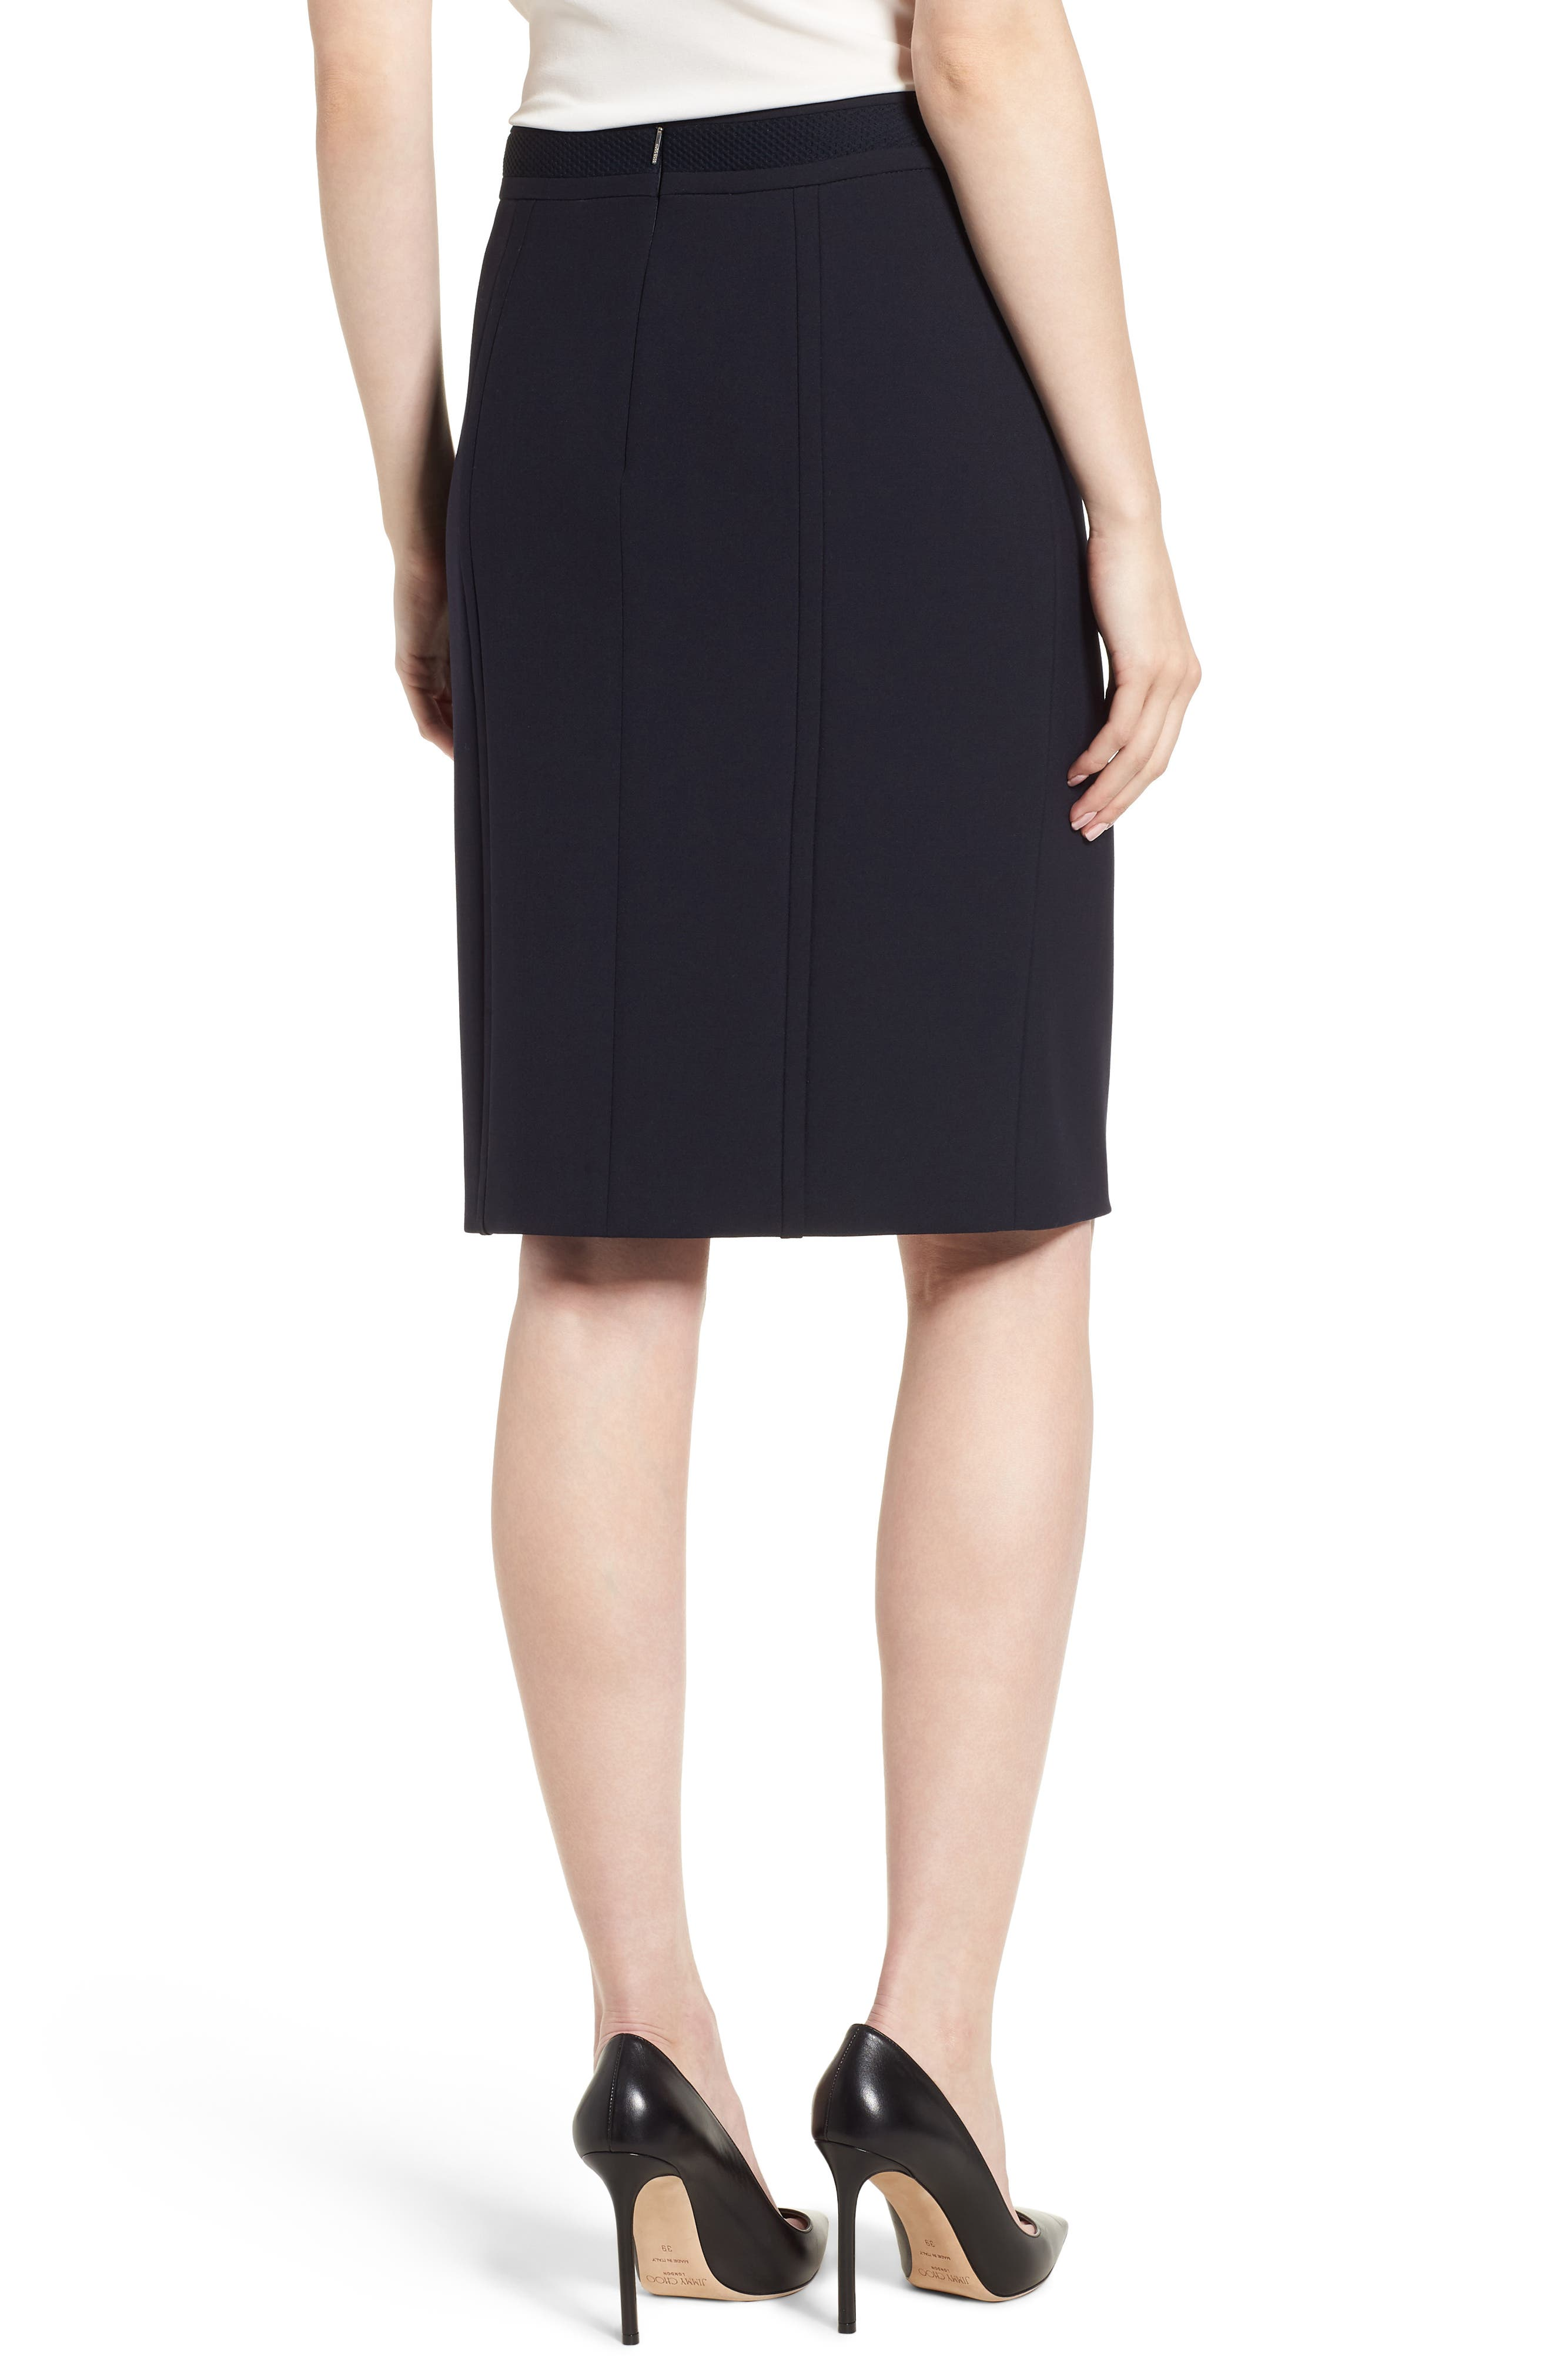 Vadama Ponte Pencil Skirt,                             Alternate thumbnail 2, color,